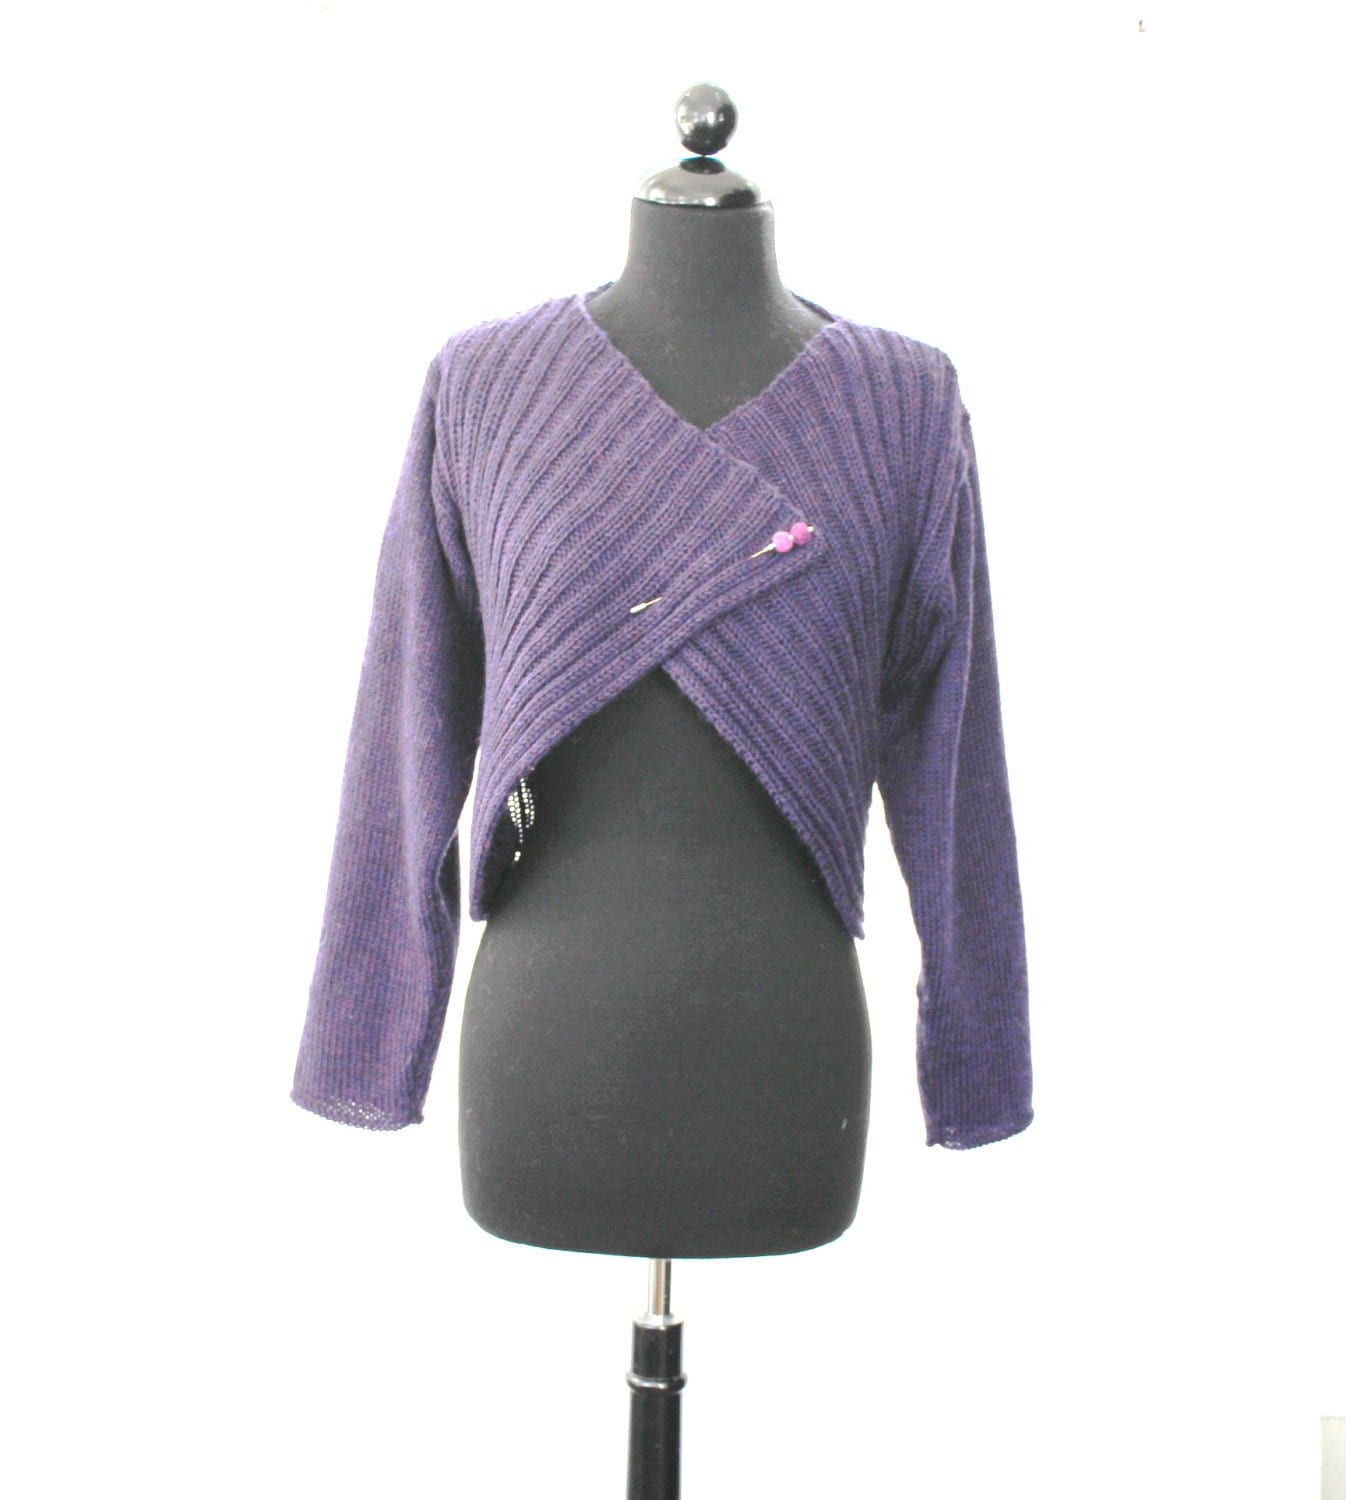 PATTERN New Italian Rib Shrug/Bolero Knitting Pattern For